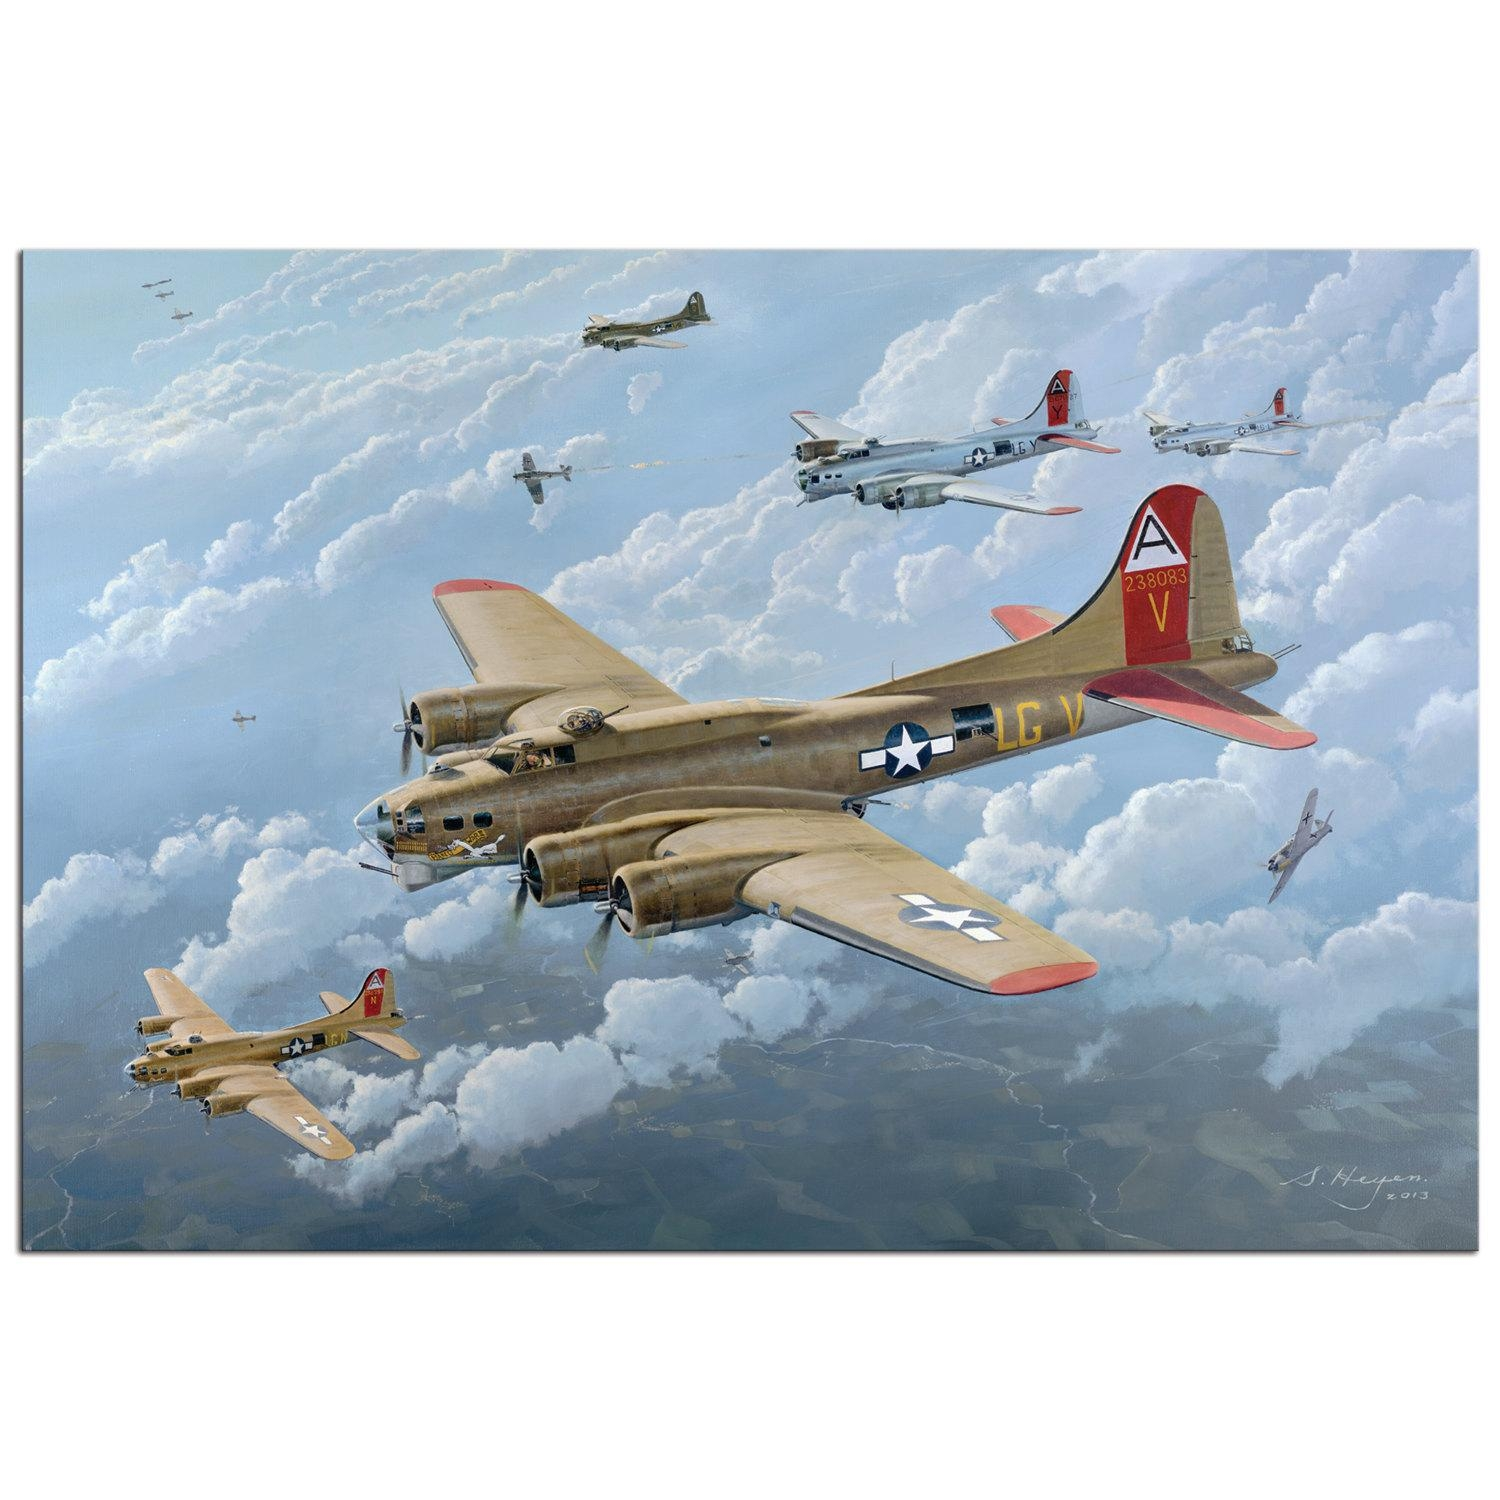 Metal Giclée Wwii B17 Bomber Painting World War 2 Aircraft Regarding Metal Airplane Wall Art (View 20 of 20)